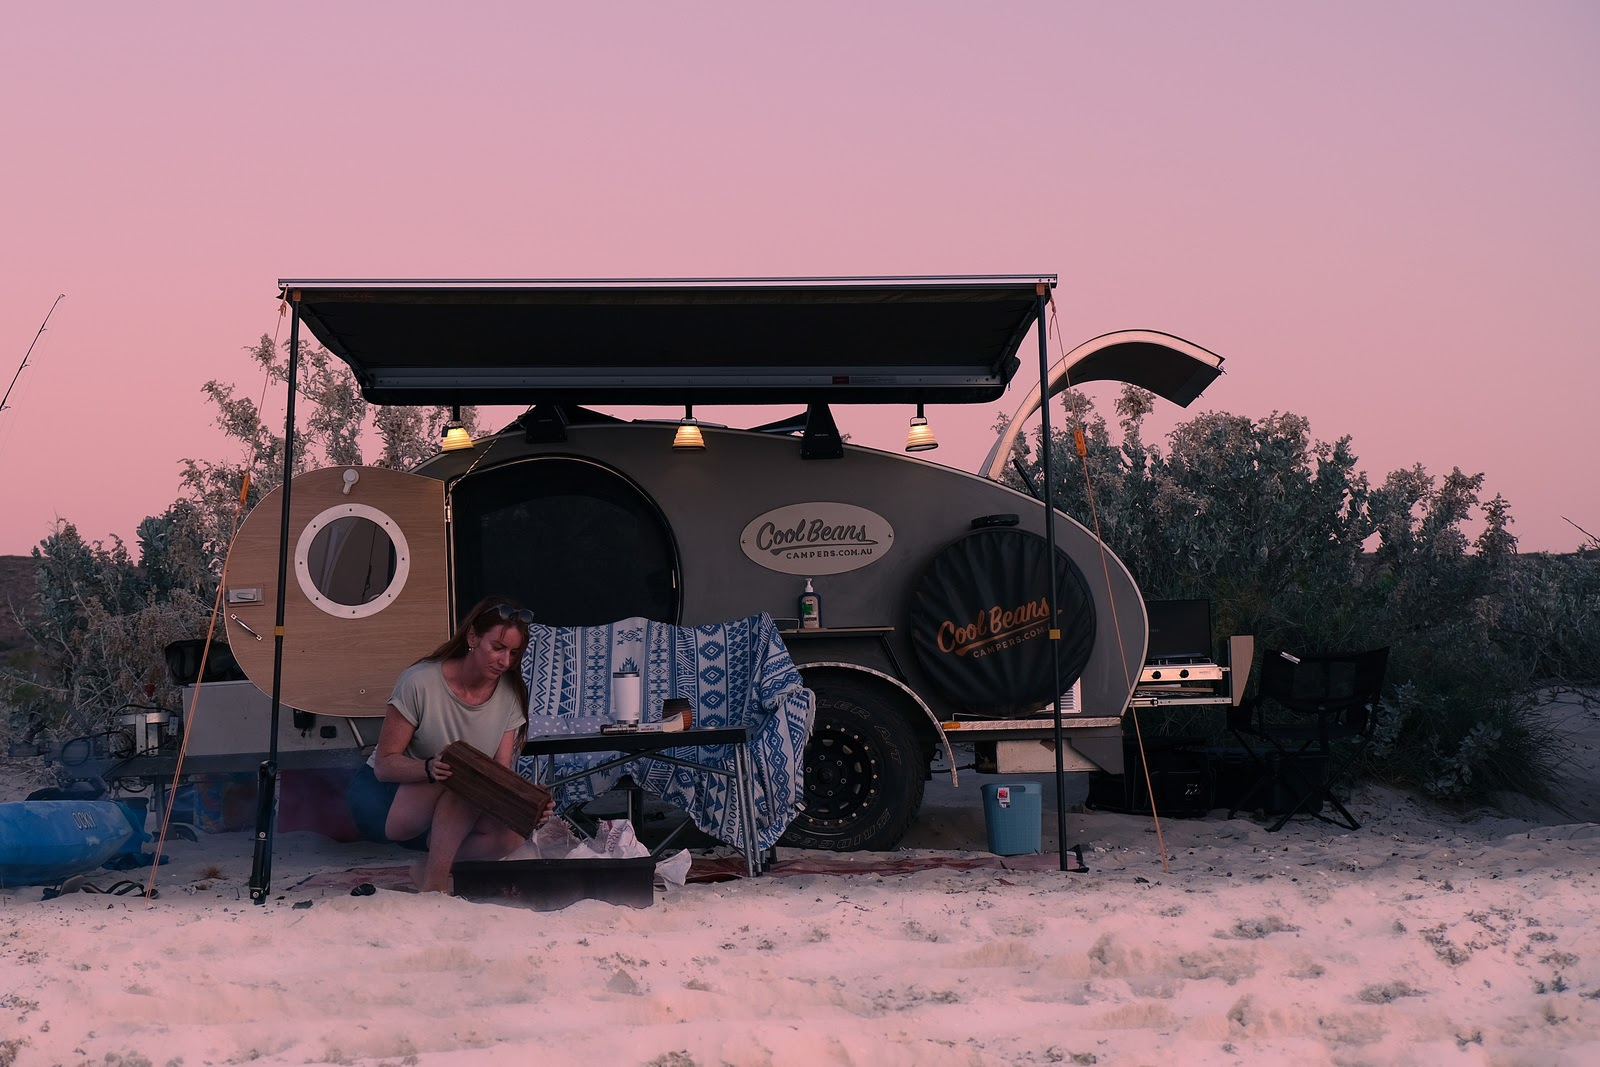 campervan parked on beach at sunset